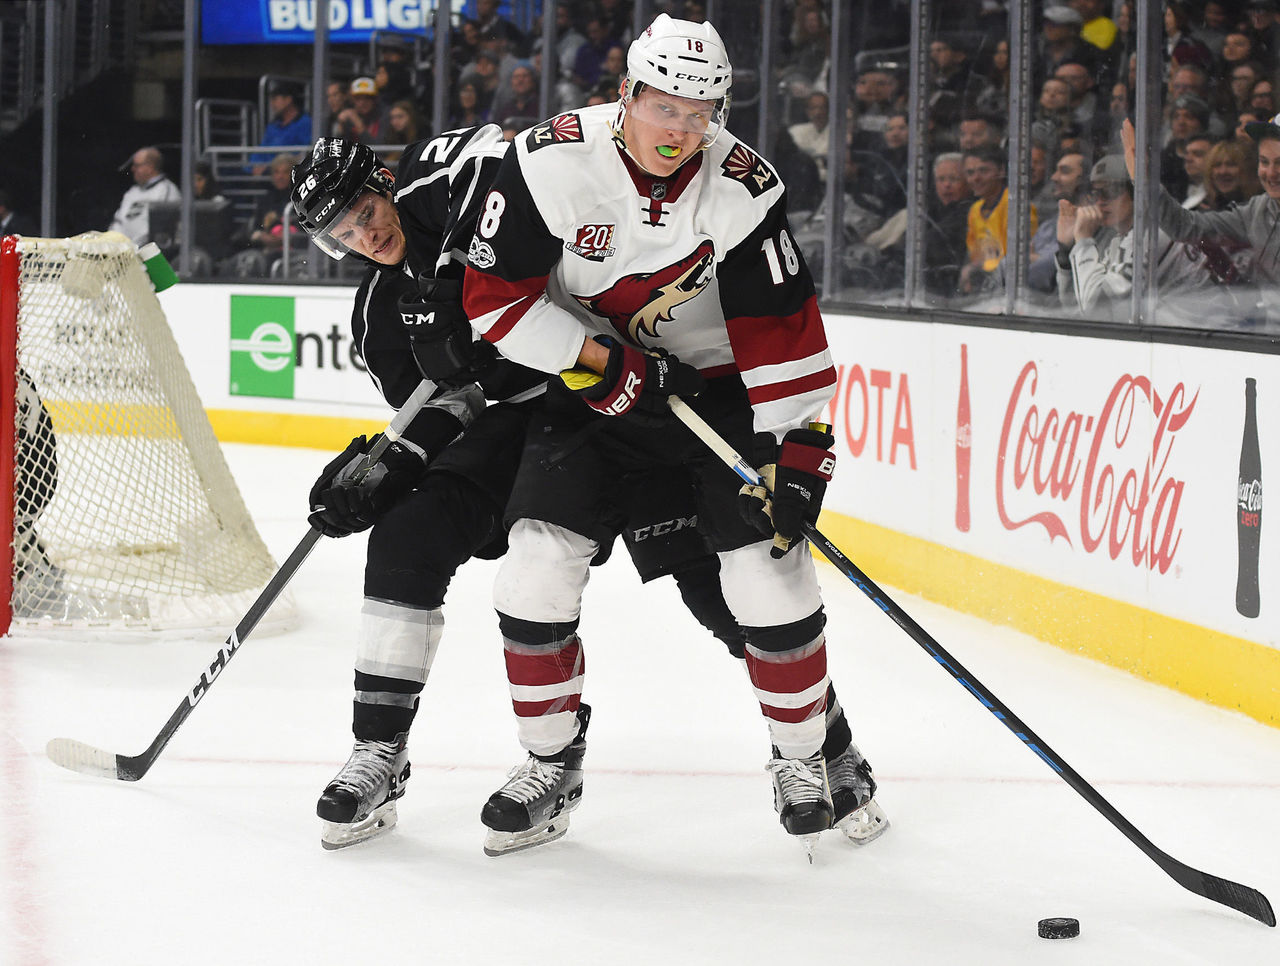 Cropped 2017 02 17t044818z 151791774 nocid rtrmadp 3 nhl arizona coyotes at los angeles kings